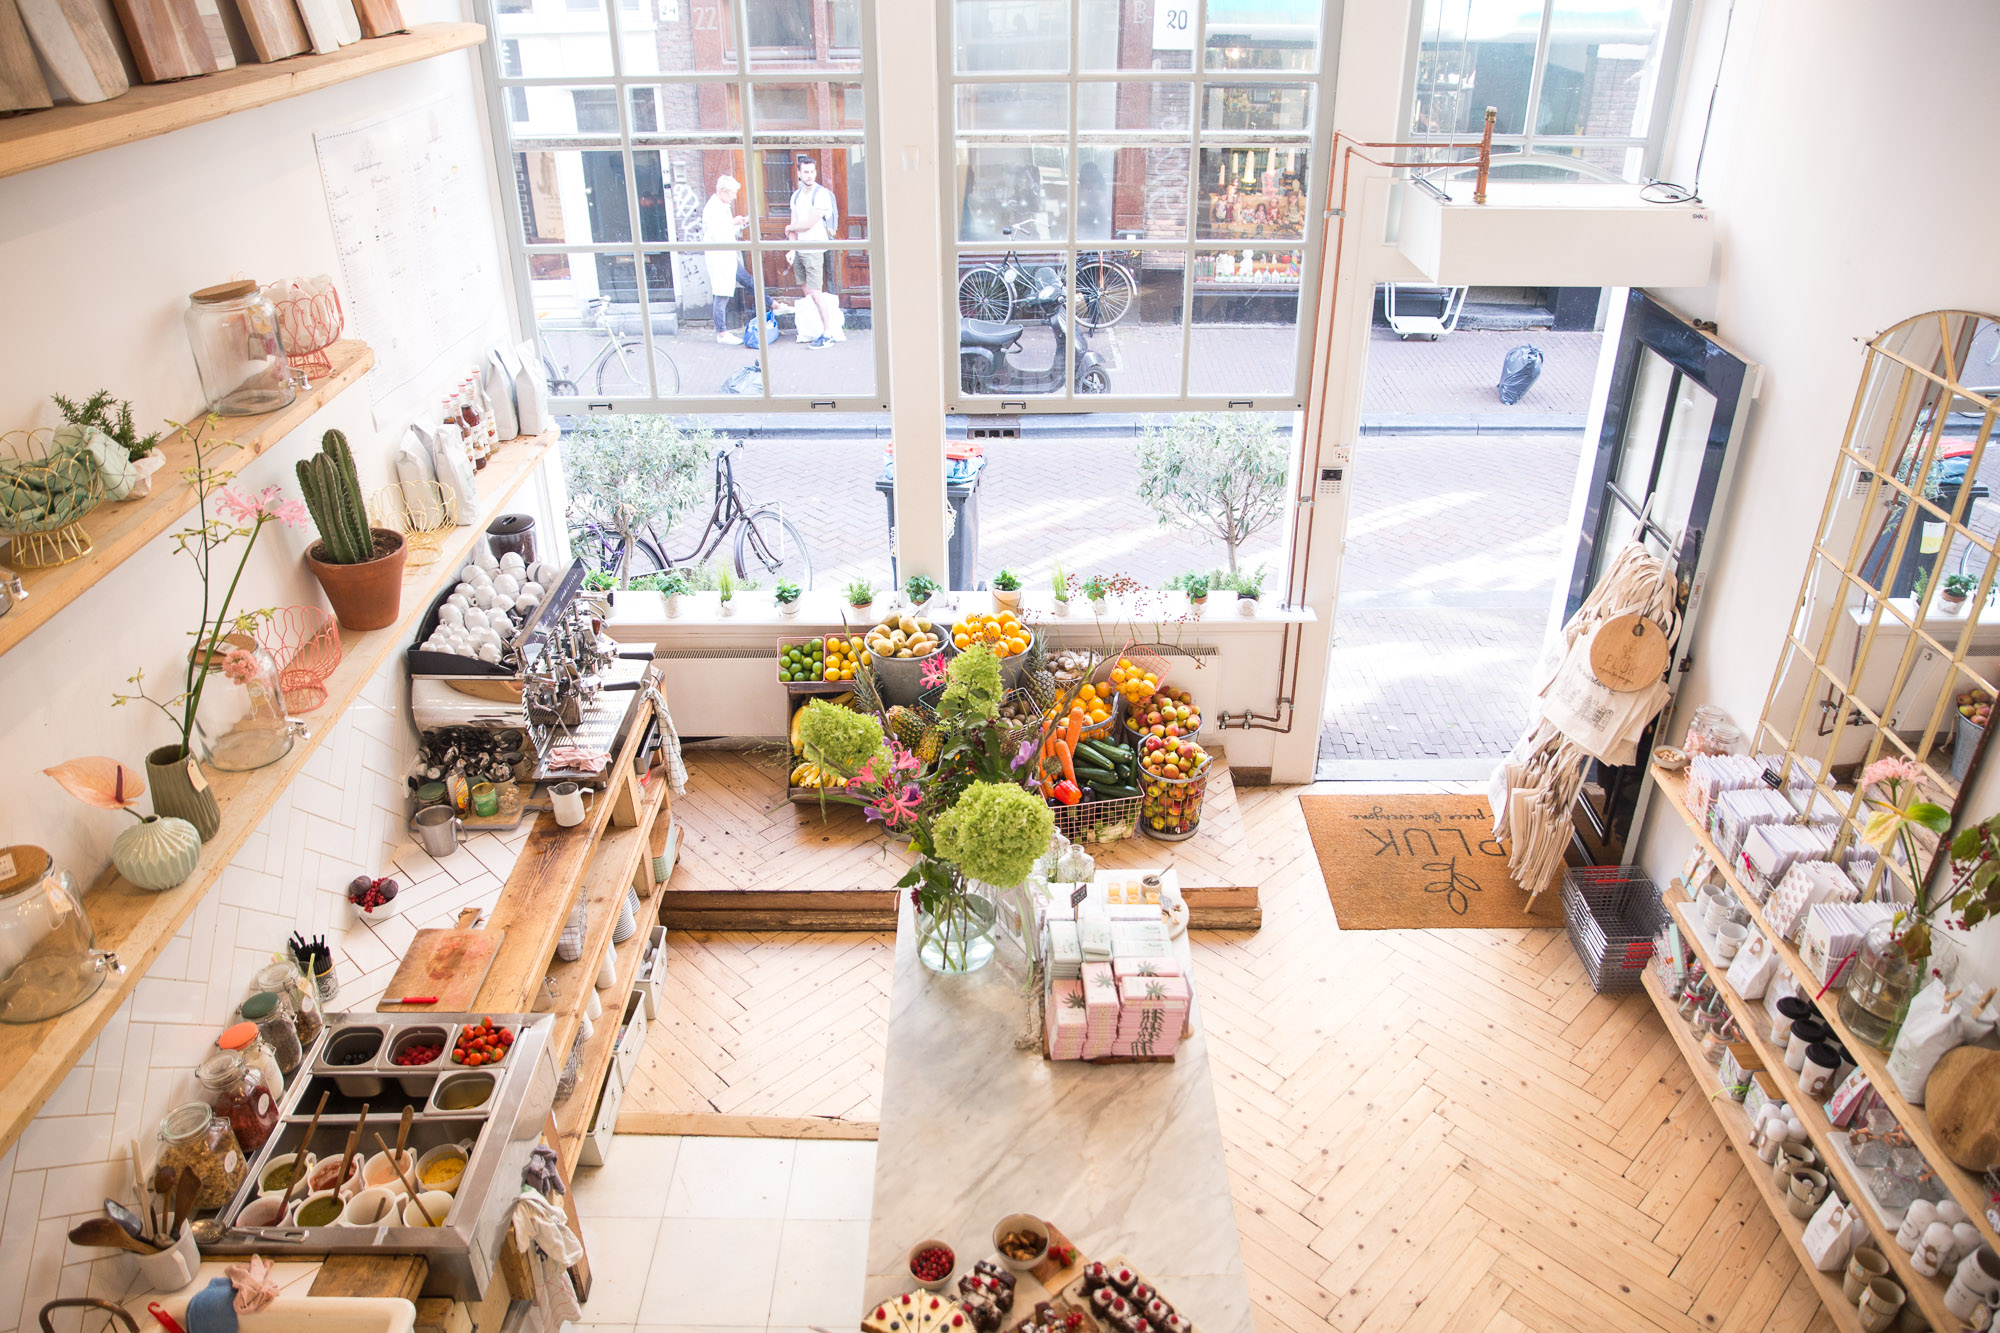 Pluk Amsterdam, a trendy cafe in the 9 streets of Amsterdam's city center, The Netherlands